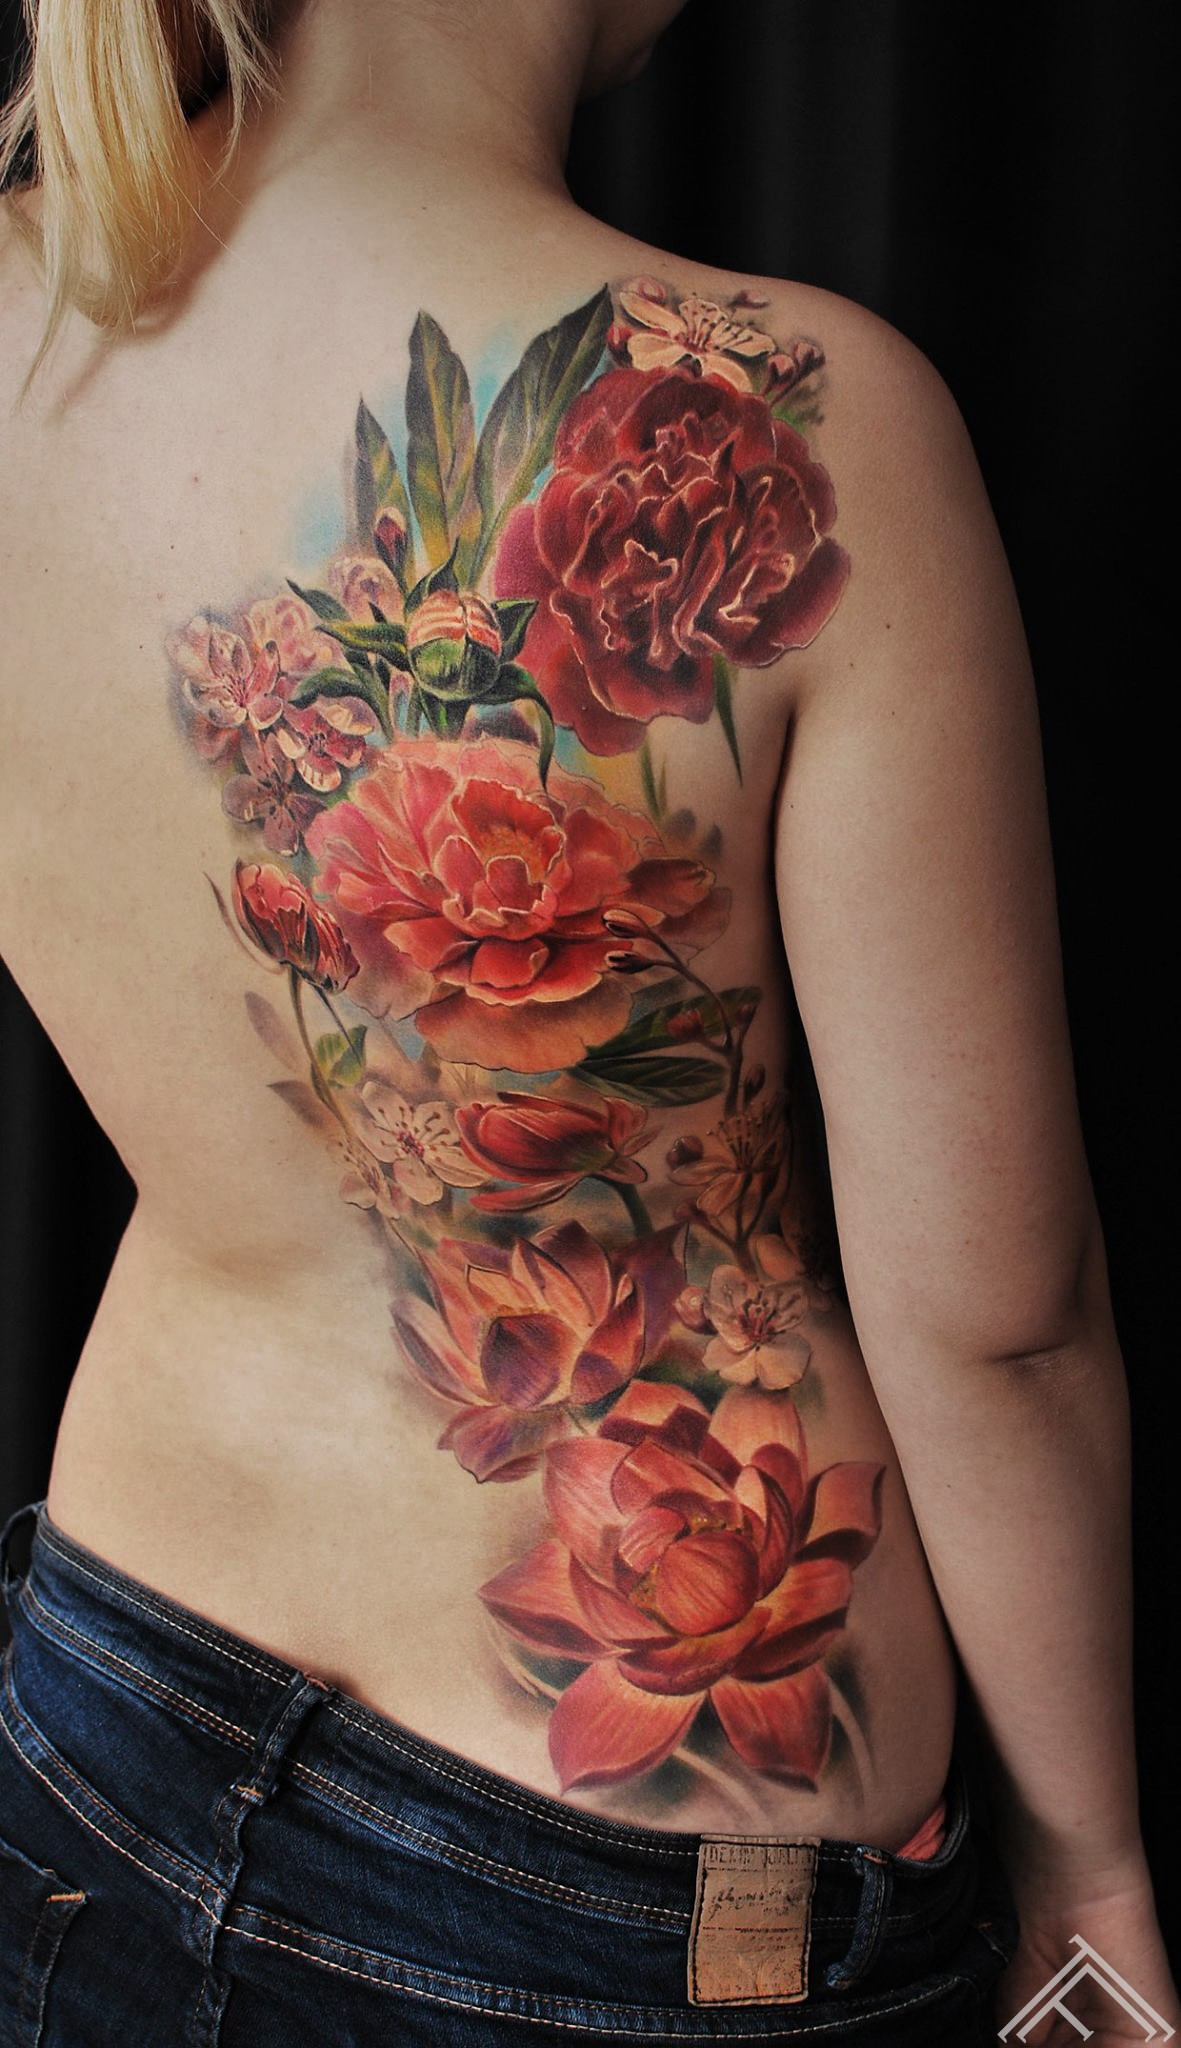 flowers-peony-lotus-lotos-cherryblosom-tattoo-ziedi-tattoofrequency-riga-marispavlo